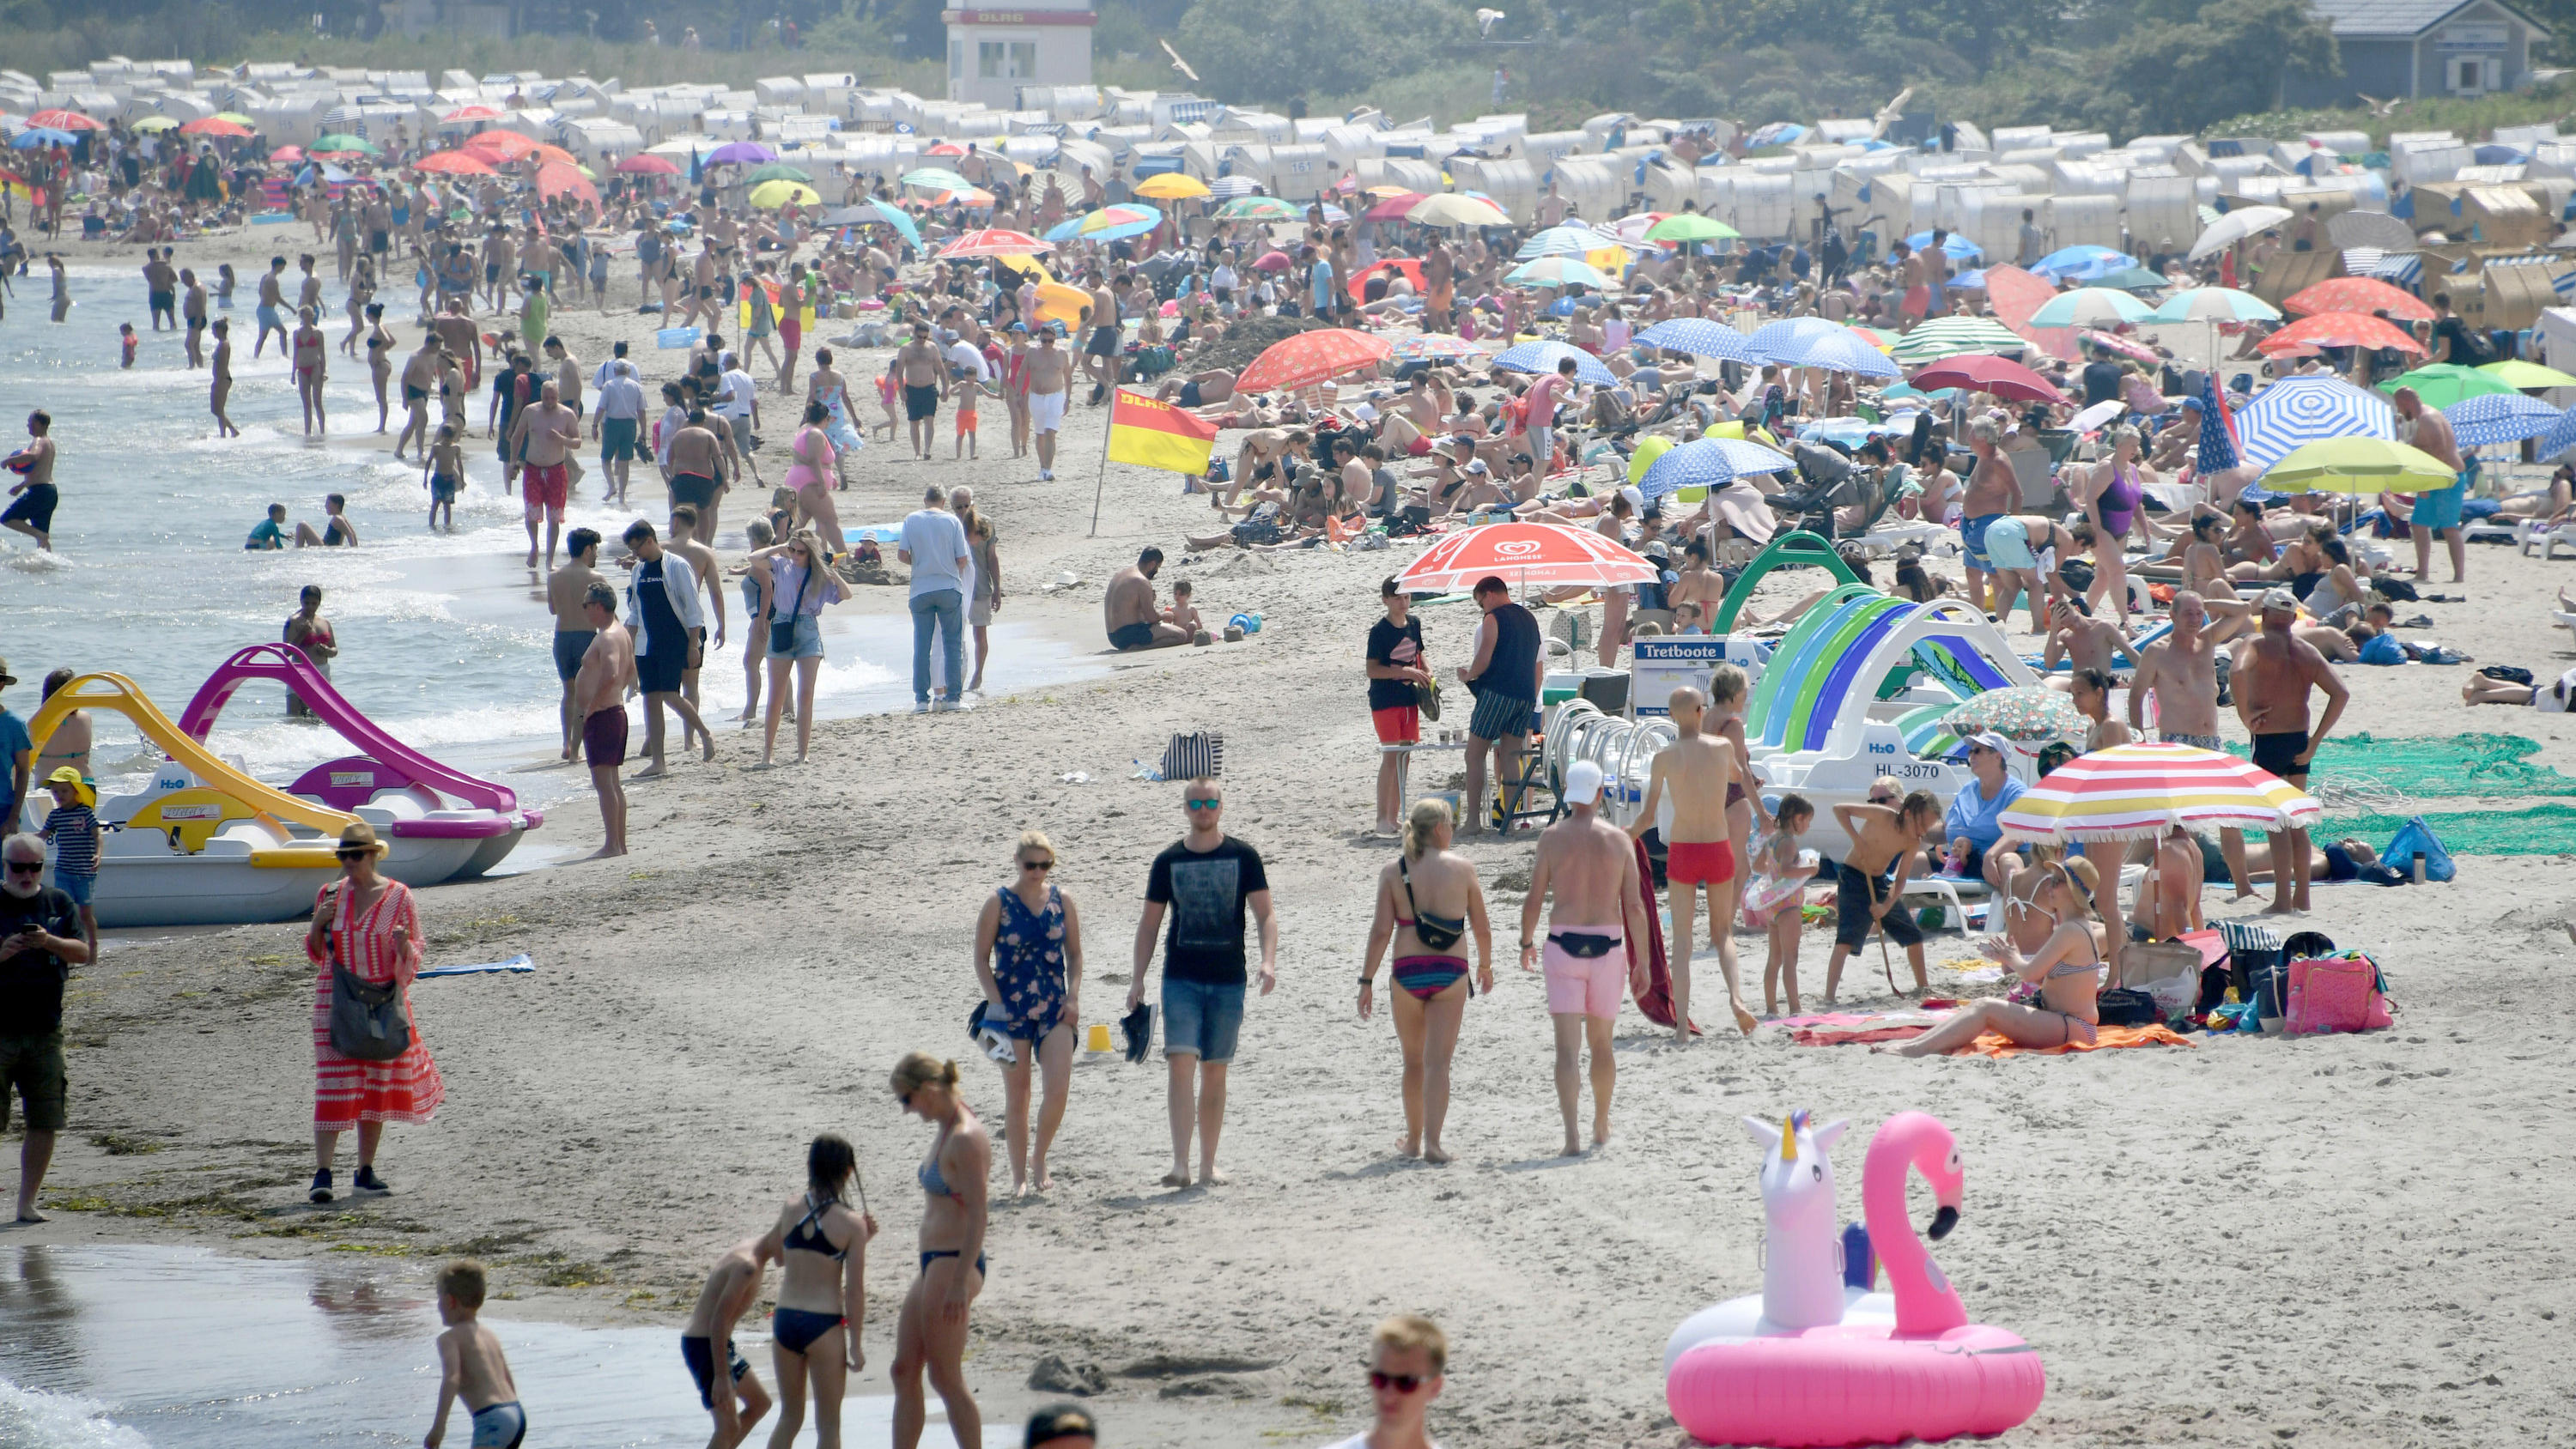 Wetter Timmendorfer Strand 14 Tage